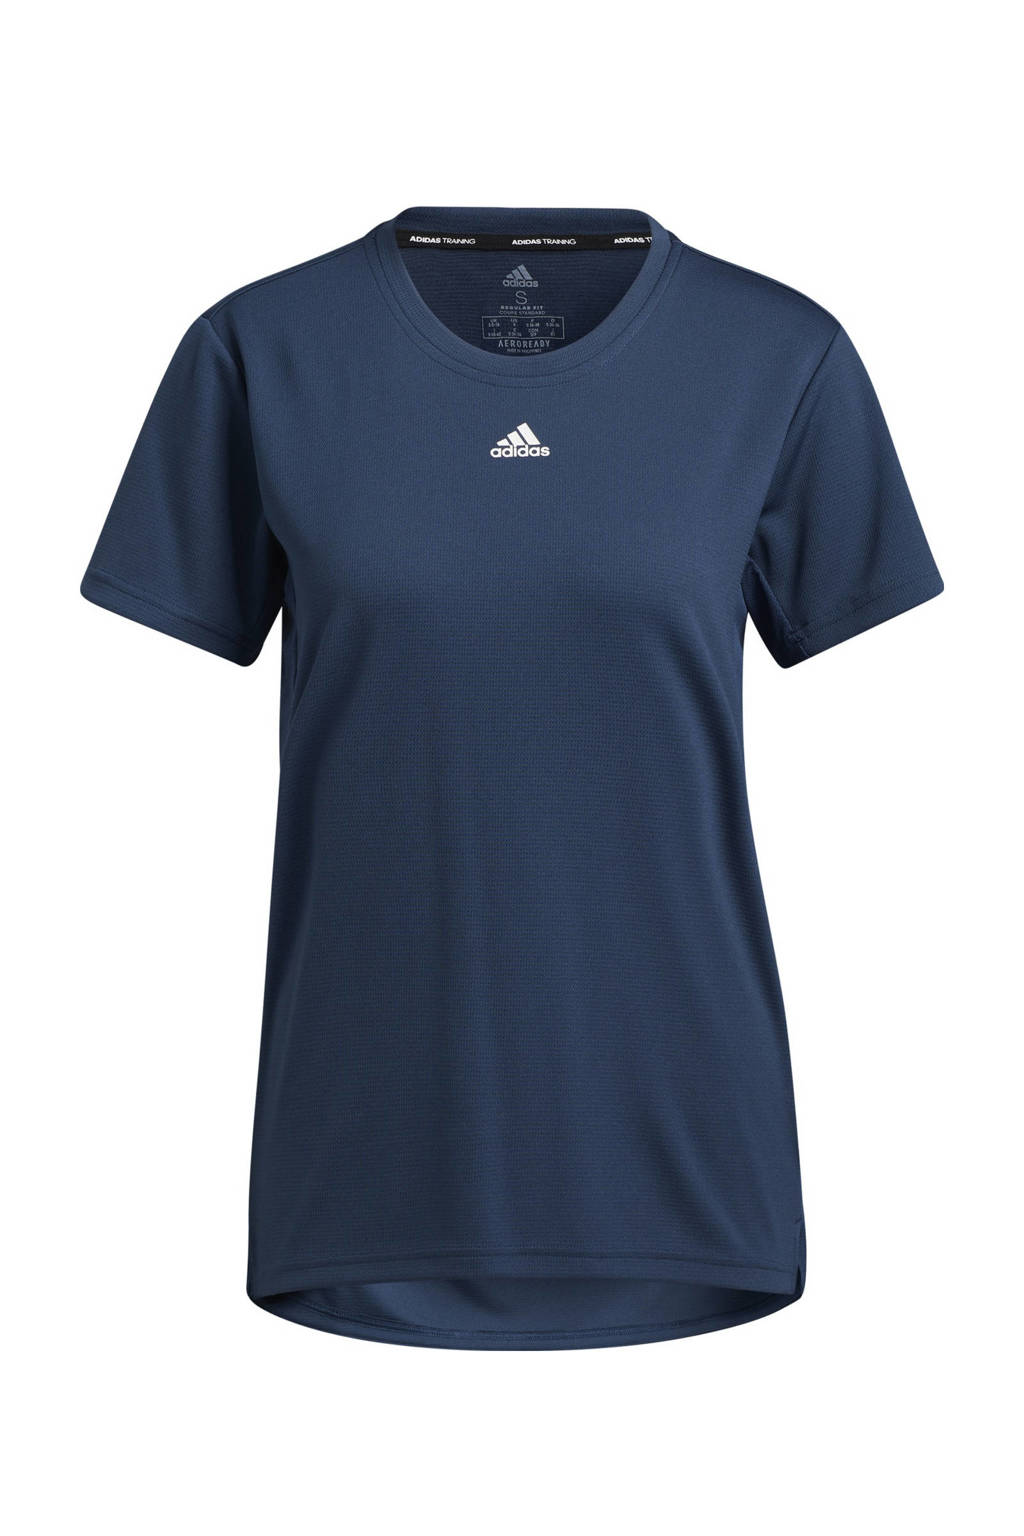 adidas Performance Necessi-Tee Designed4Training sport T-shirt donkerblauw/wit, Donkerblauw/wit